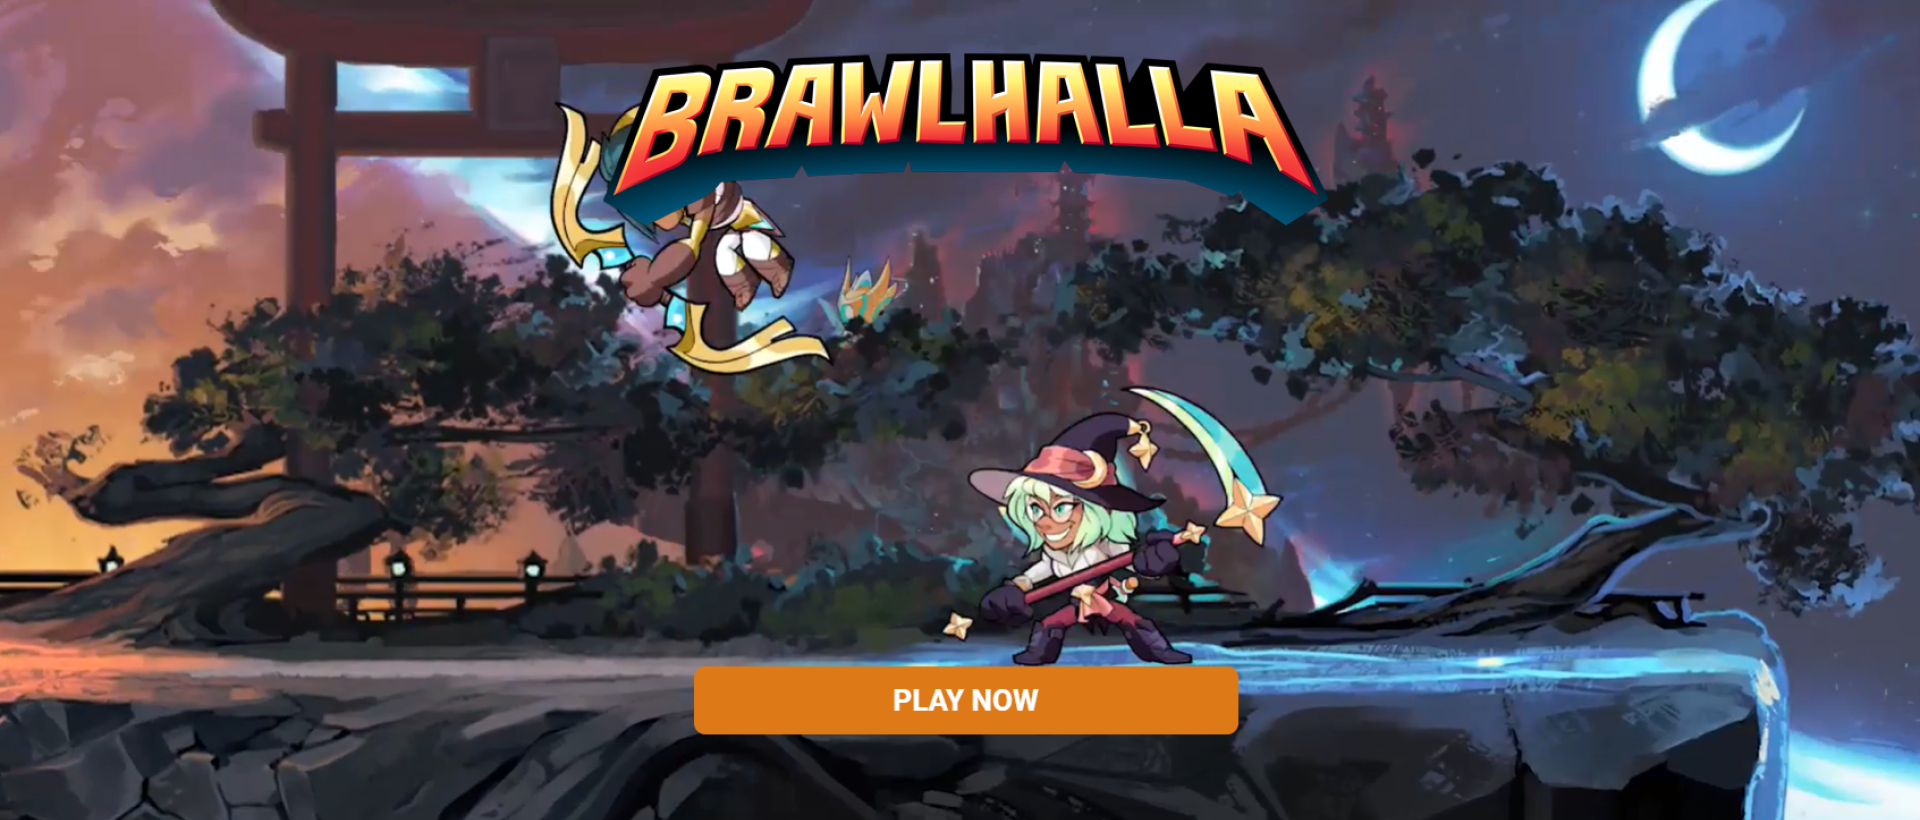 Brawlhalla Petra The Darkheart Gameplay Trailer